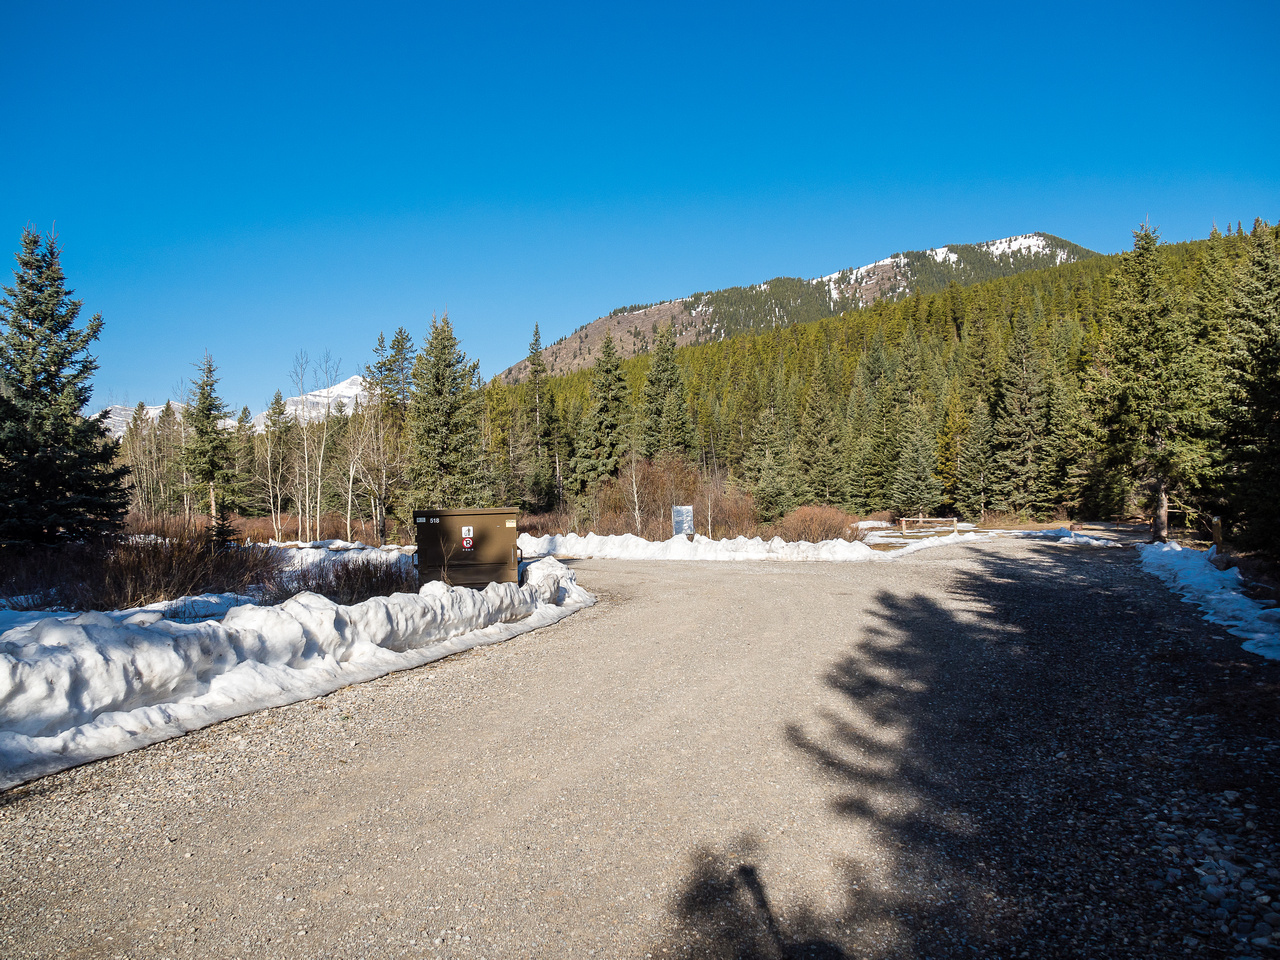 The campground is still closed this early in the season. E-B Ridge rises in the distance looking pretty snowy up top.